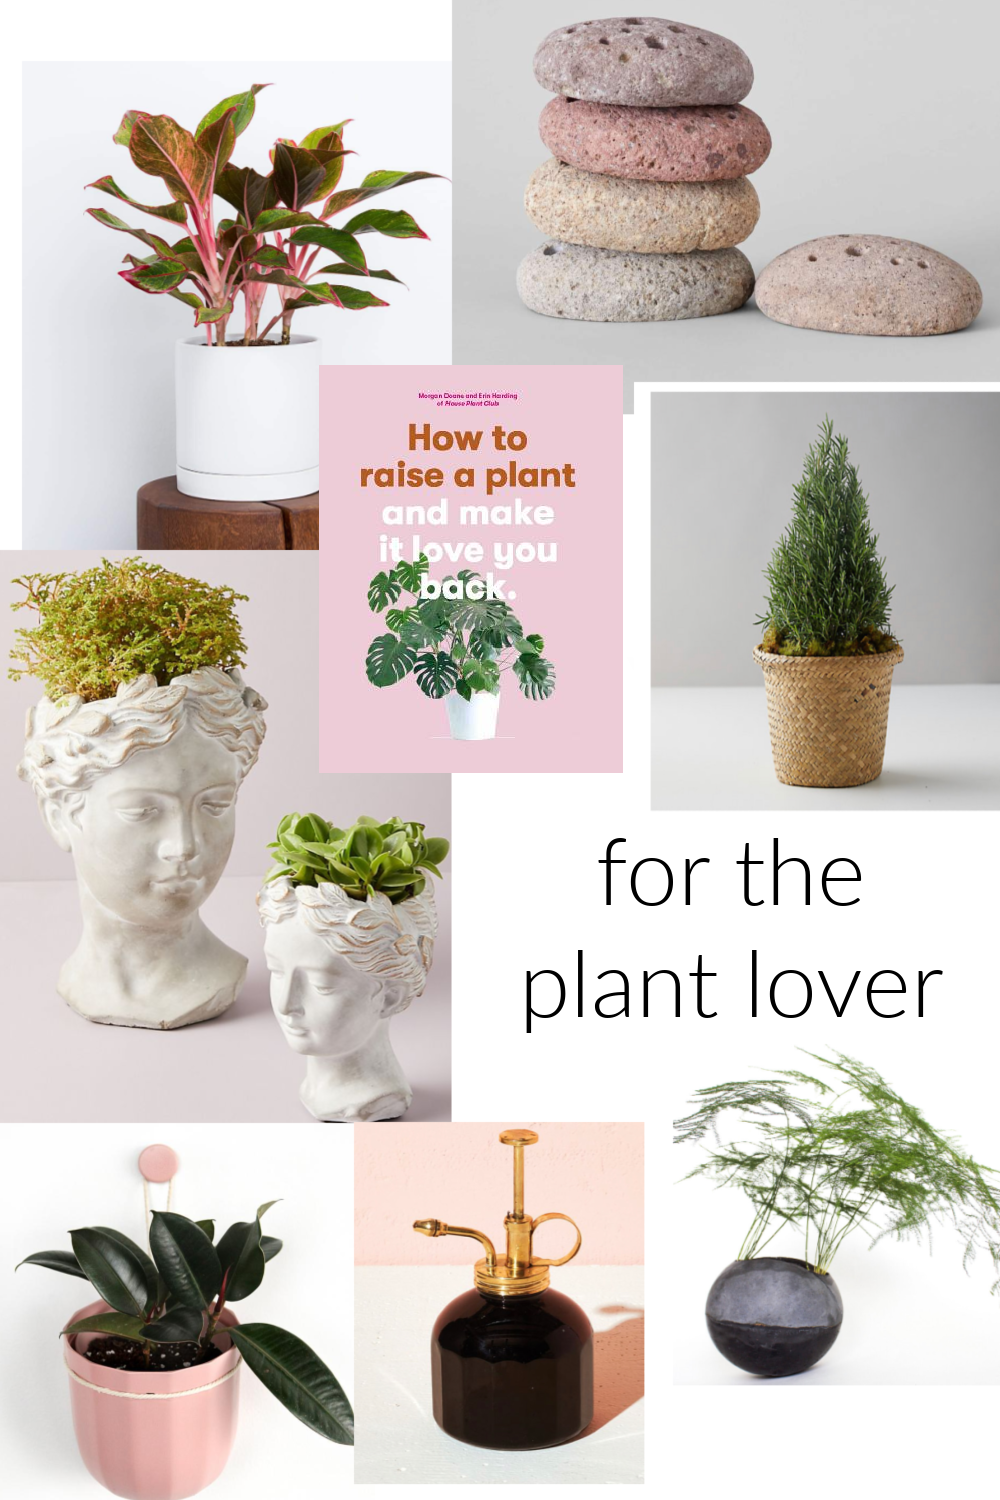 HOLIDAY 2020 GIFT GUIDE: FOR THE PLANT LOVER